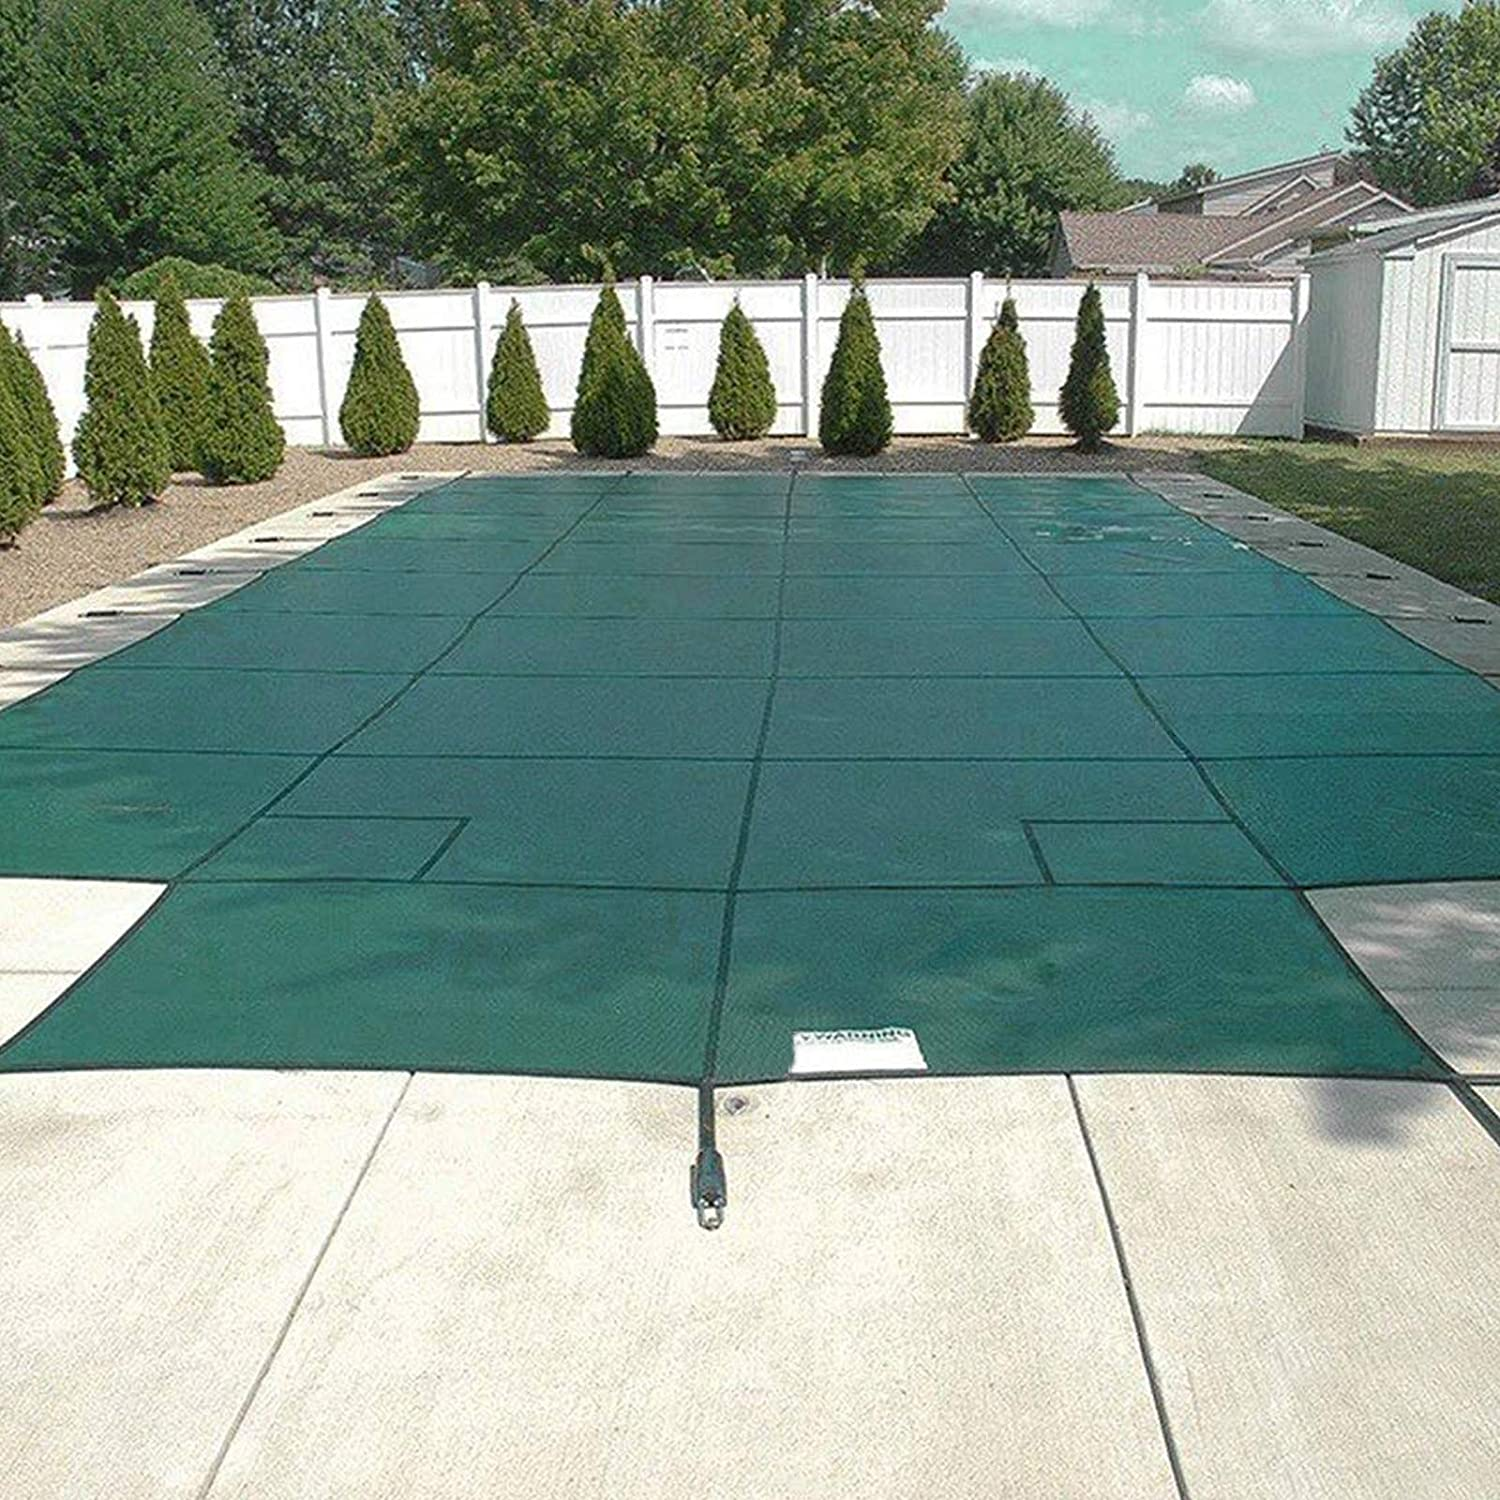 Buy Happybuy Pool Safety Cover Fits18x36ft Inground Safety Pool Cover Green Mesh with 4x8ft Center End Steps Solid Pool Safety Cover for Swimming Pool Winter Online in Indonesia. B07L59SJF8